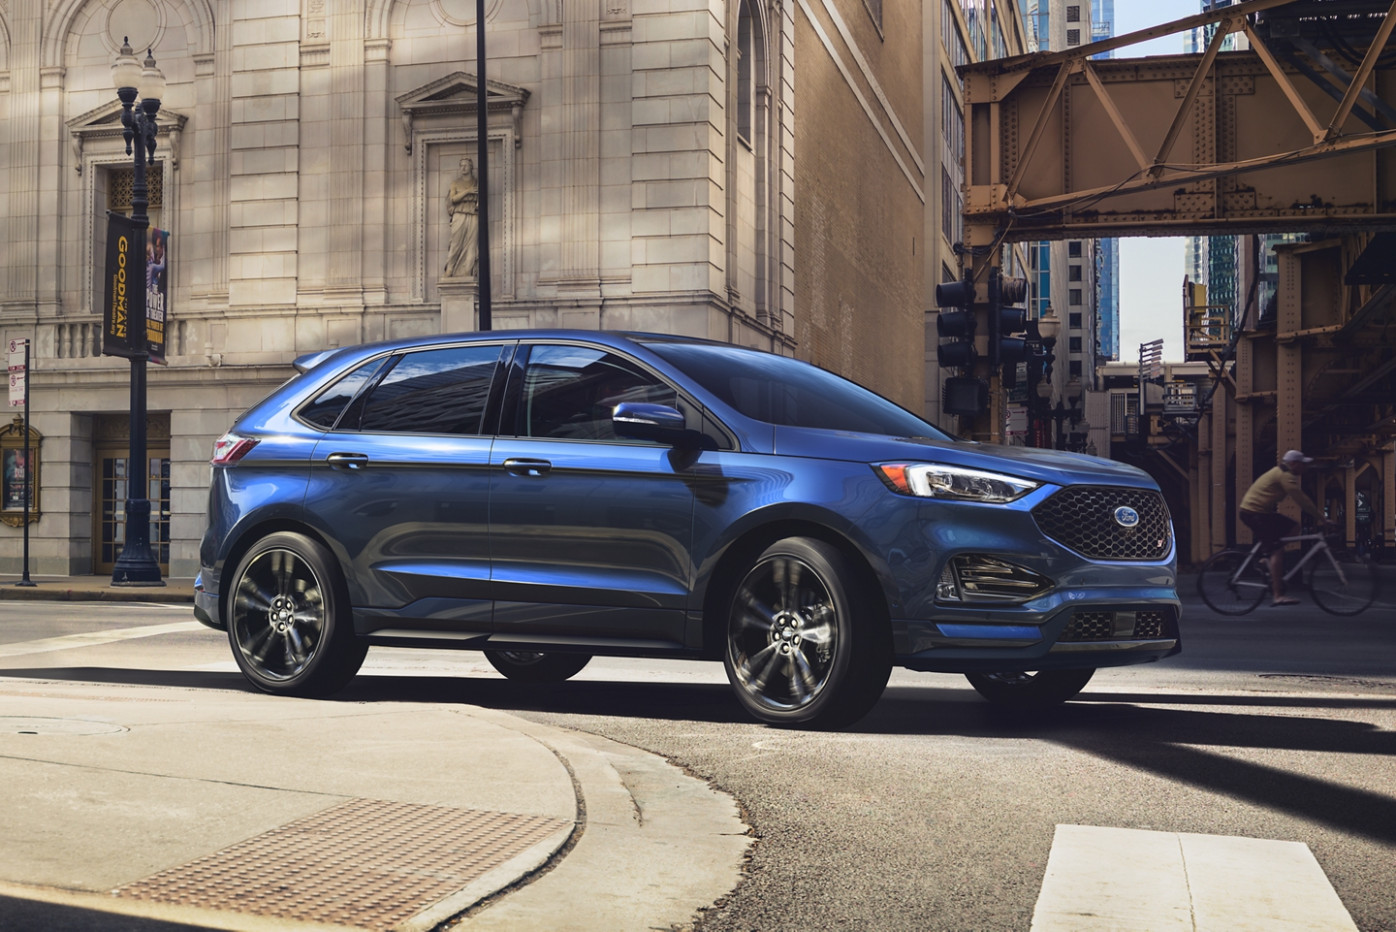 Inside The 6 Ford Edge: An SUV That Exceeds Expectations ..